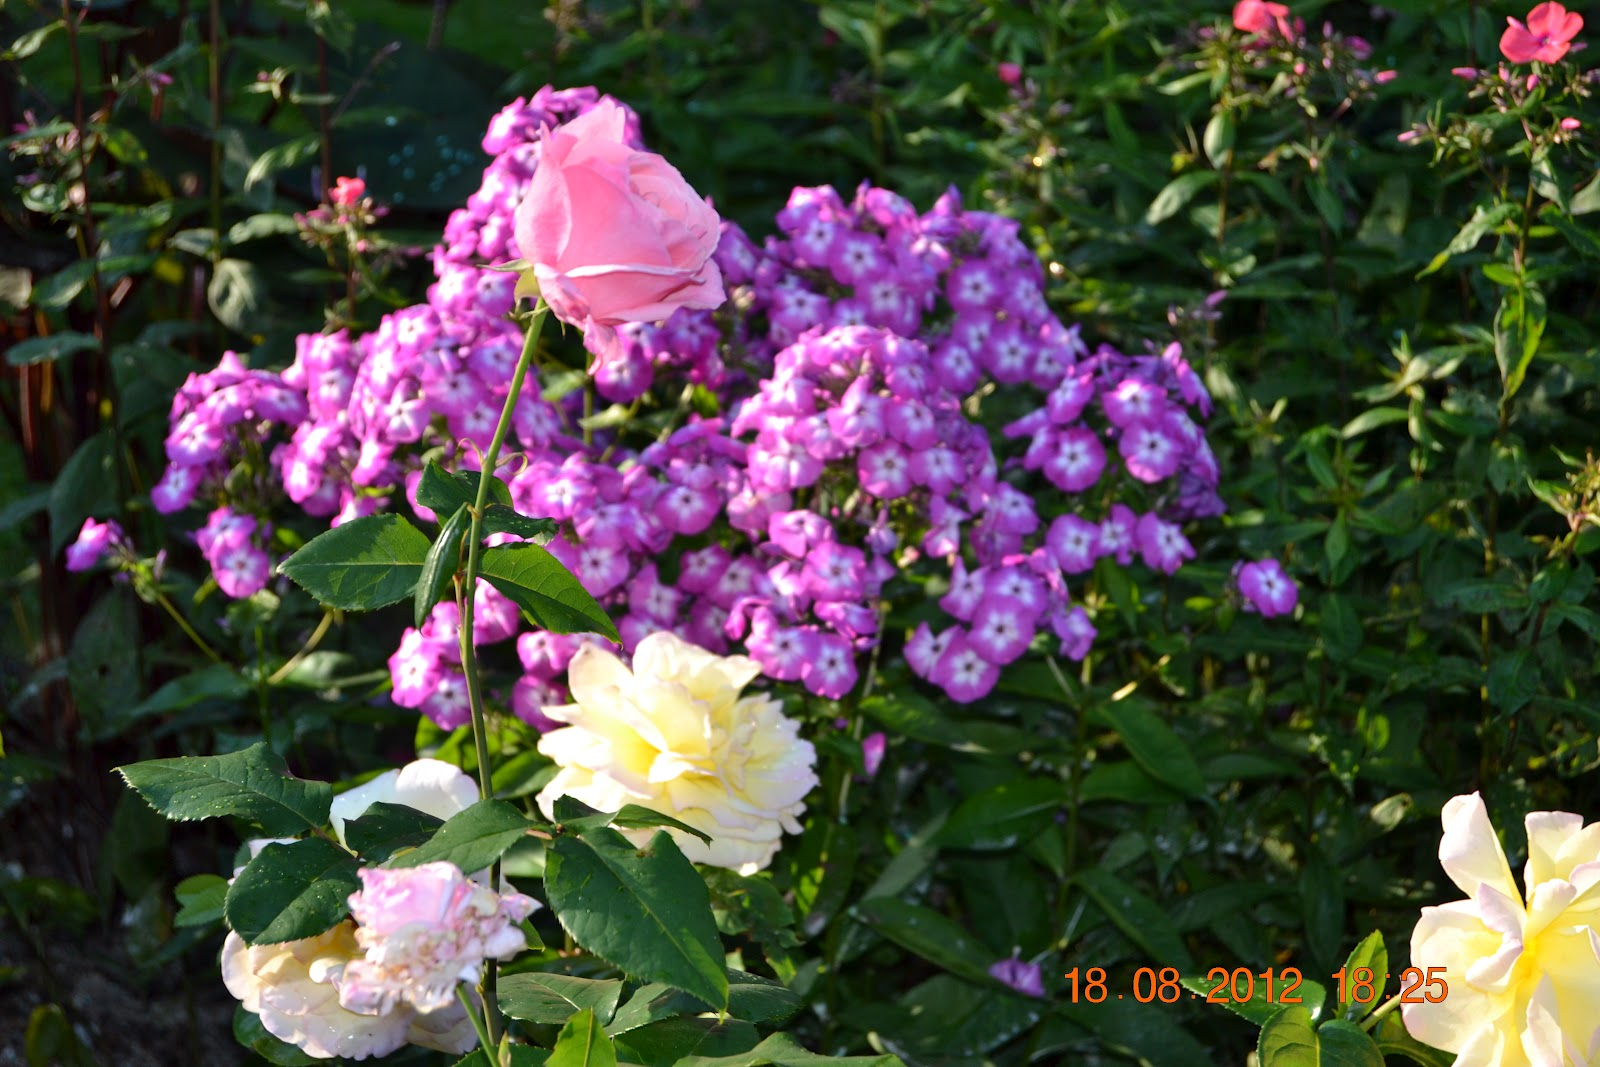 Ruusut ja syysleimut kukkivat – Roses and phloxes are blooming